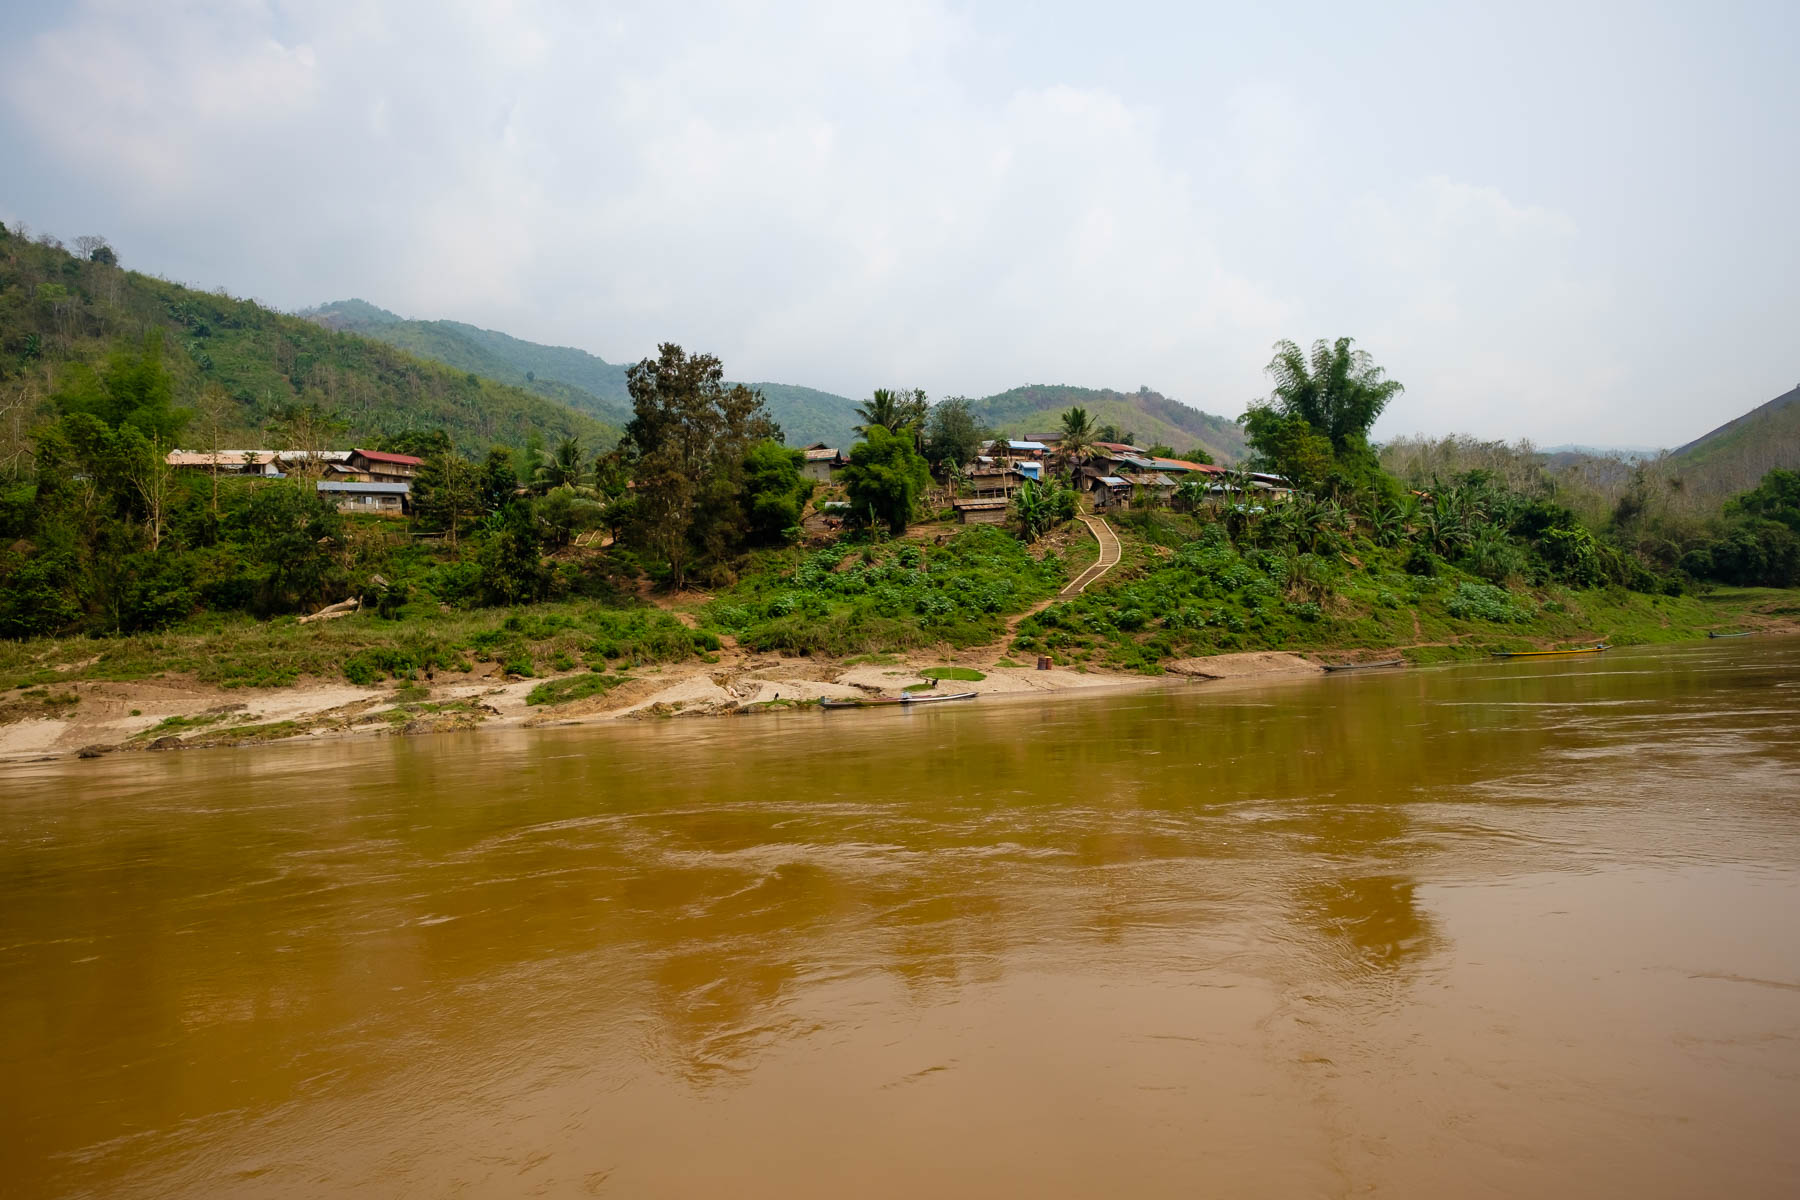 houses along the Mekong river